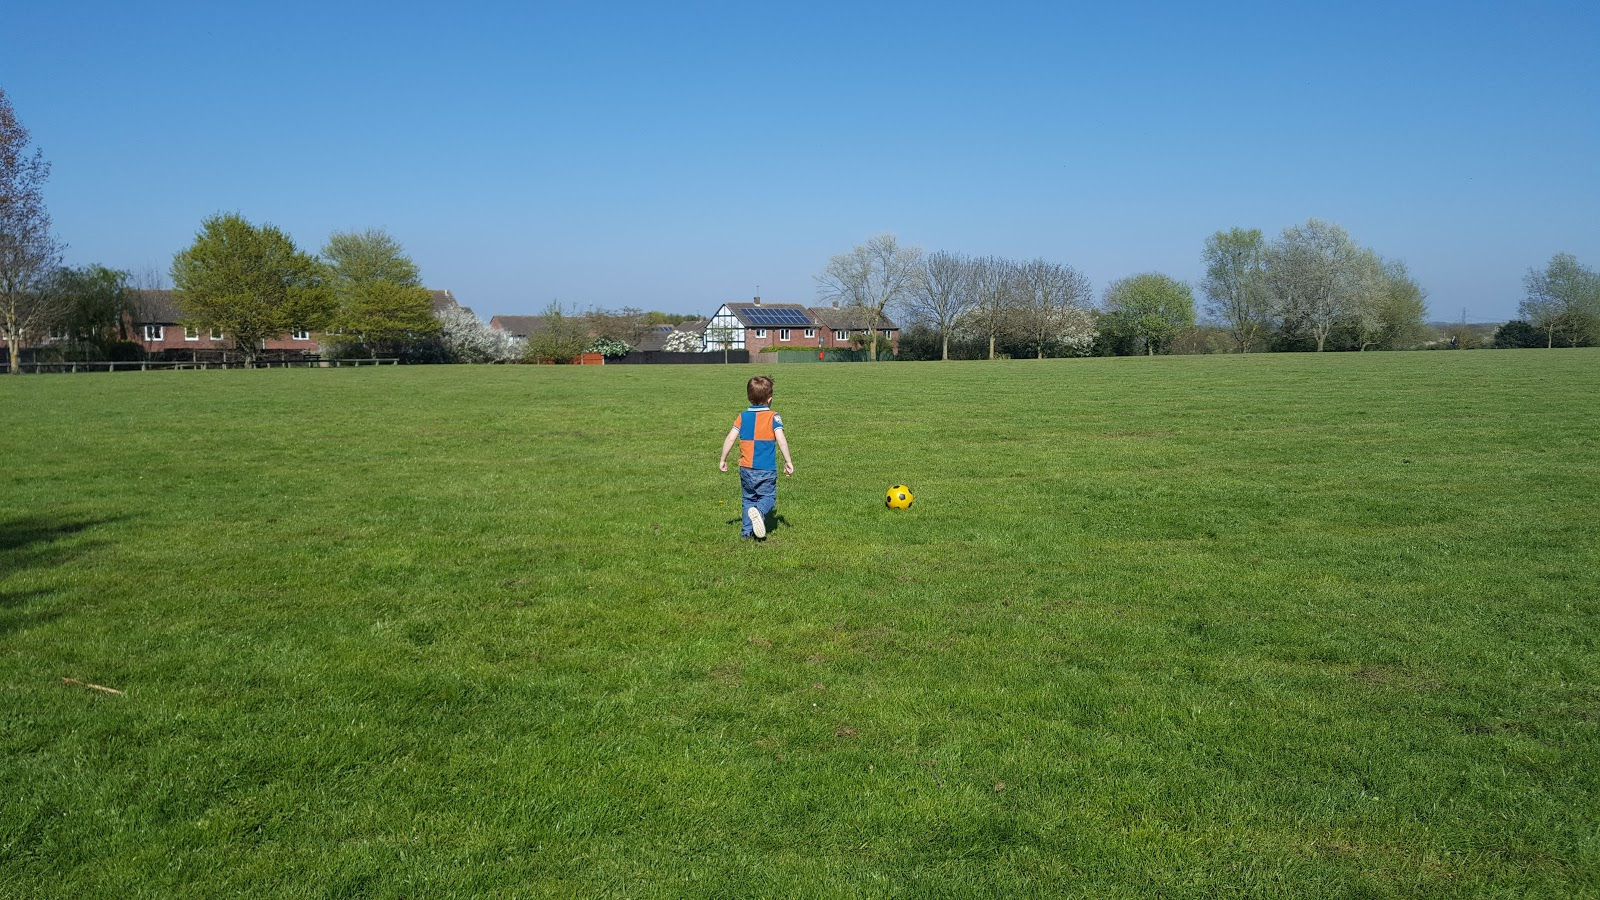 Football In The Park Marina Drive Groby